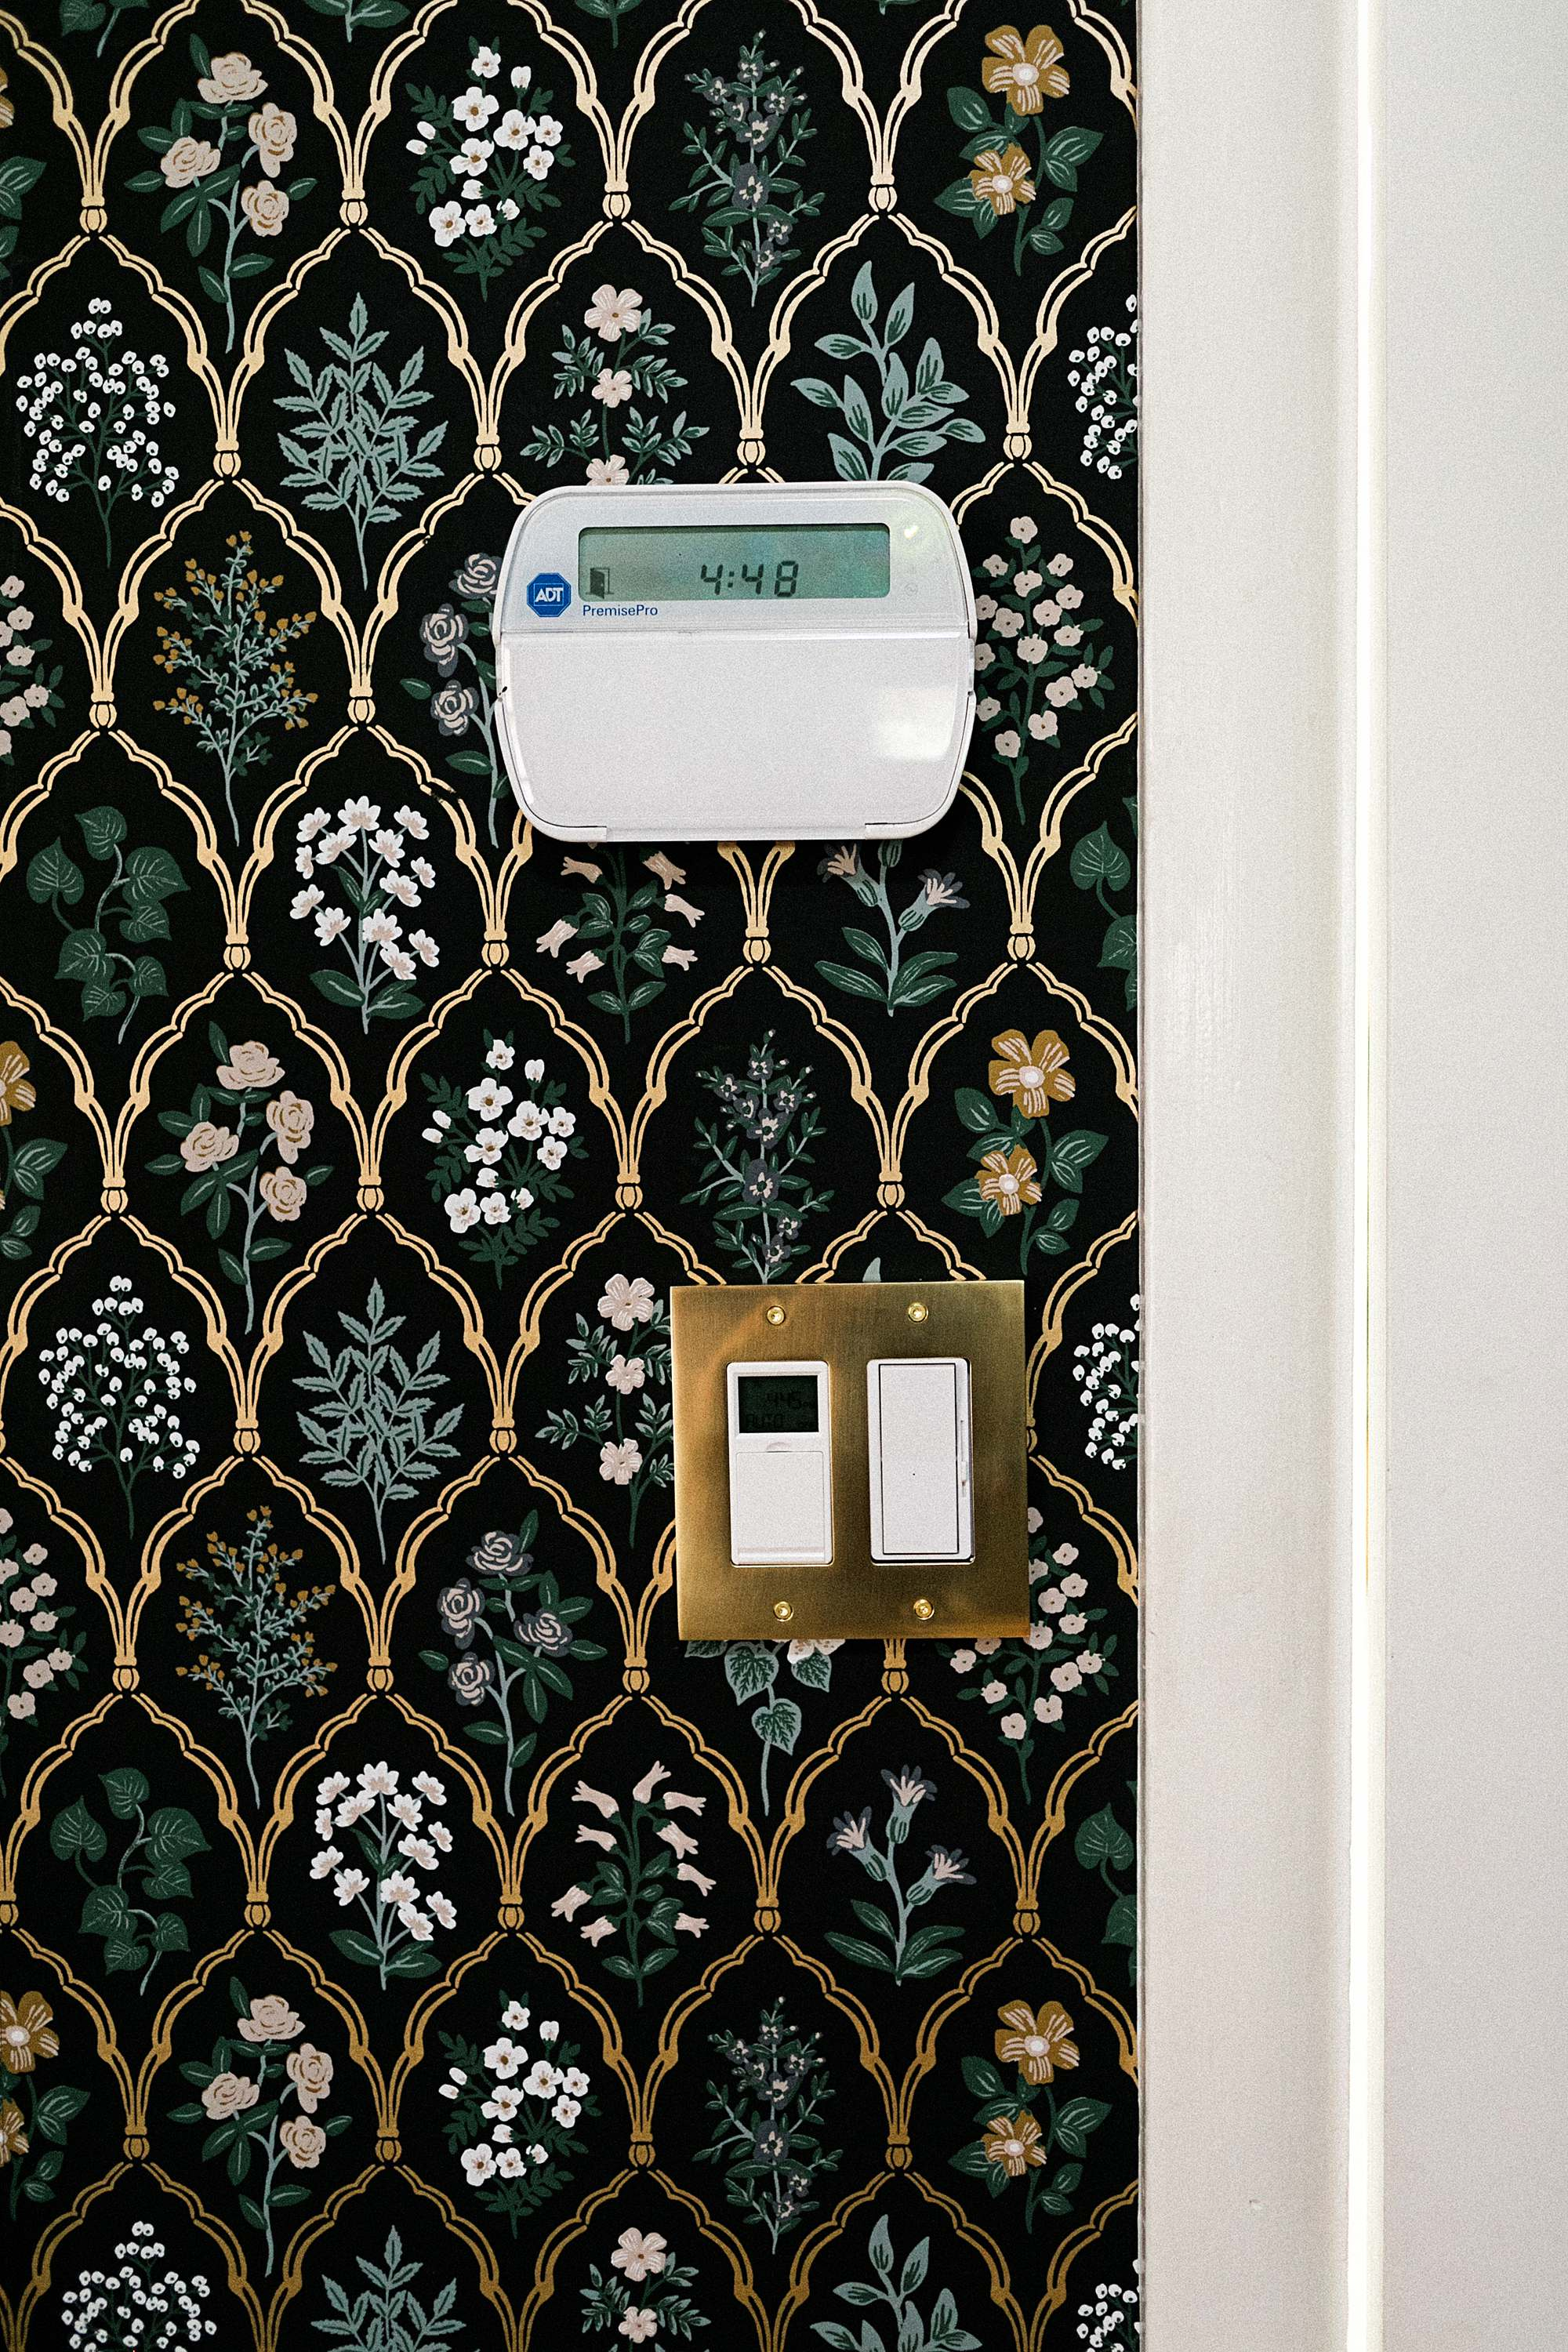 gold switch plate scalloped jute rug rifle paper co. Hawthorne wallpaper black linen floral wallpaper in mudroom laundry room English cottage vibes grandmillennial style - dianaelizabethblog.com